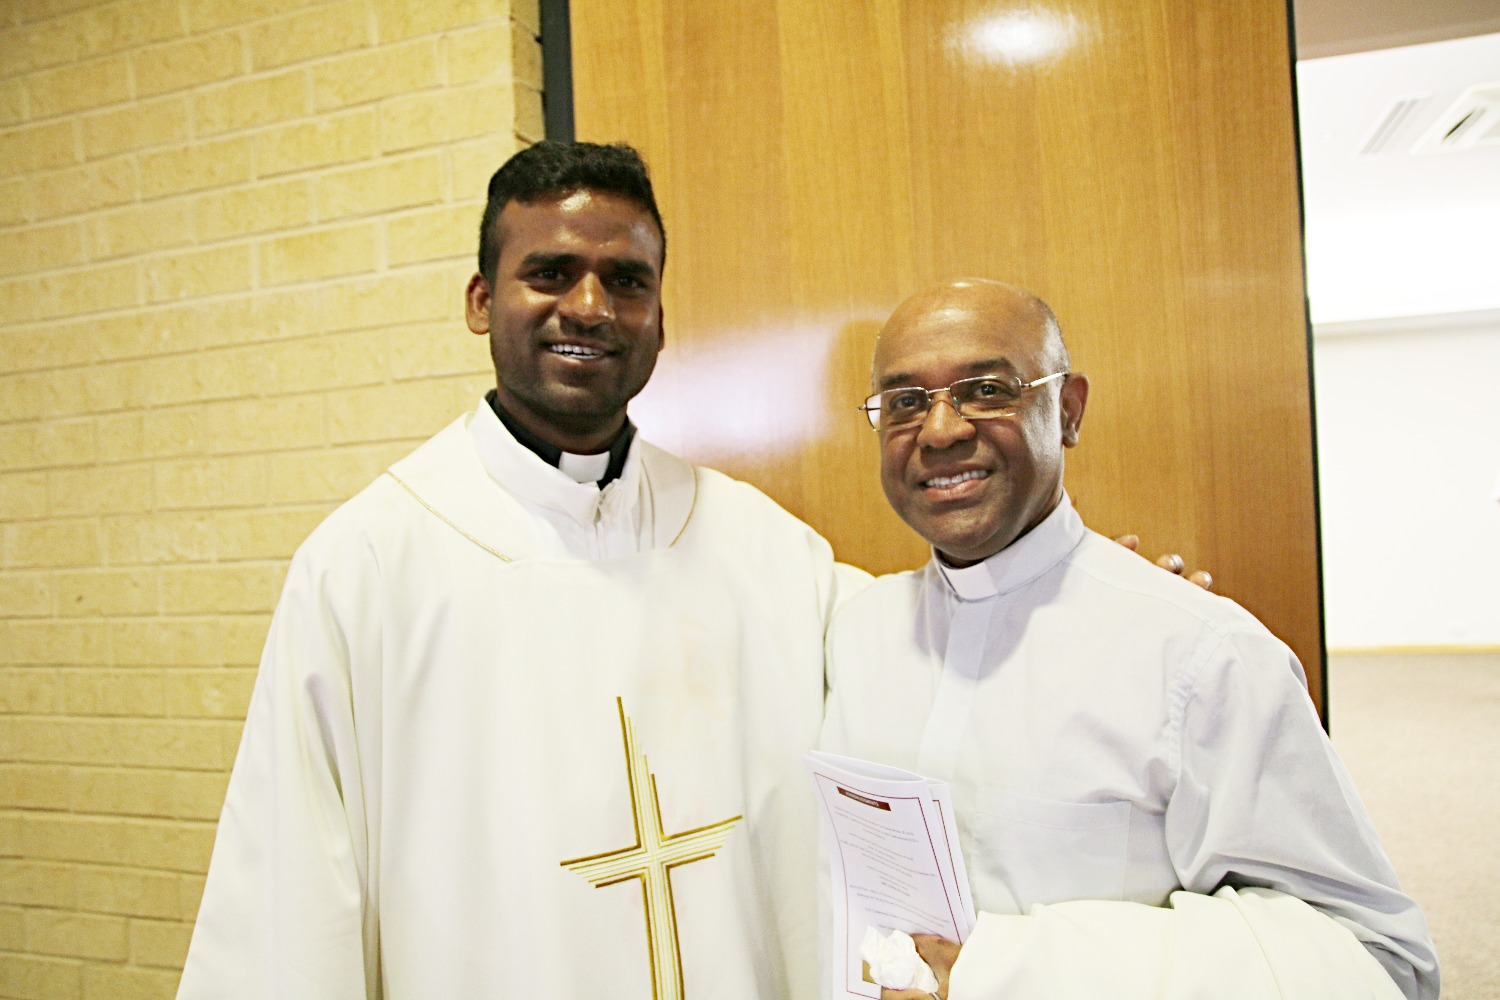 Deacon John with Fr. Jean-Noel